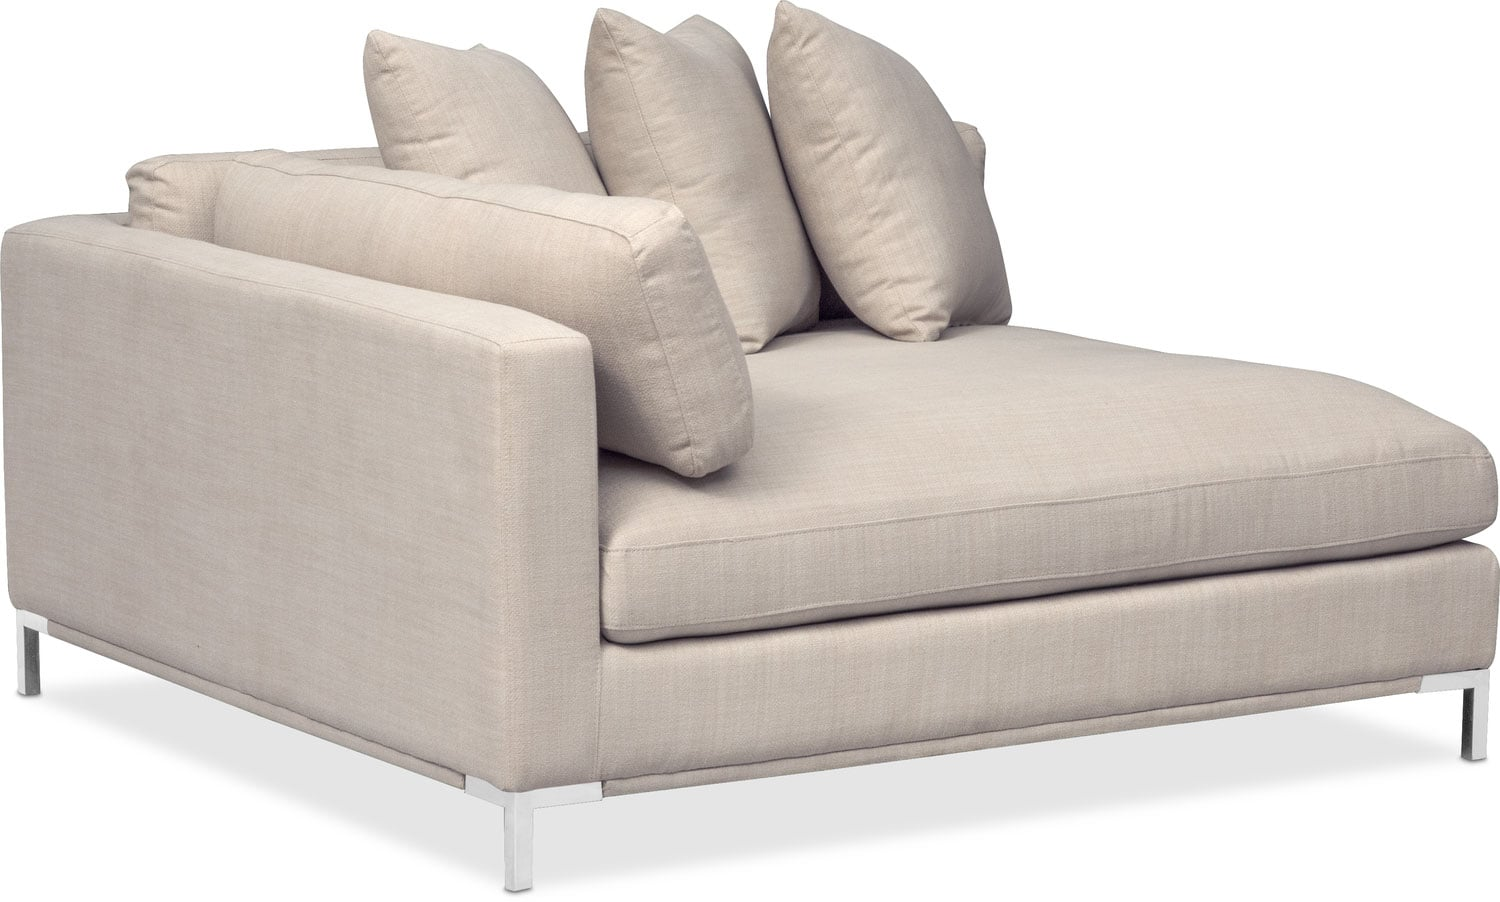 Living Room Furniture Ivory Sofa Moda Corner Sofa Ivory Value City Furniture And Mattresses